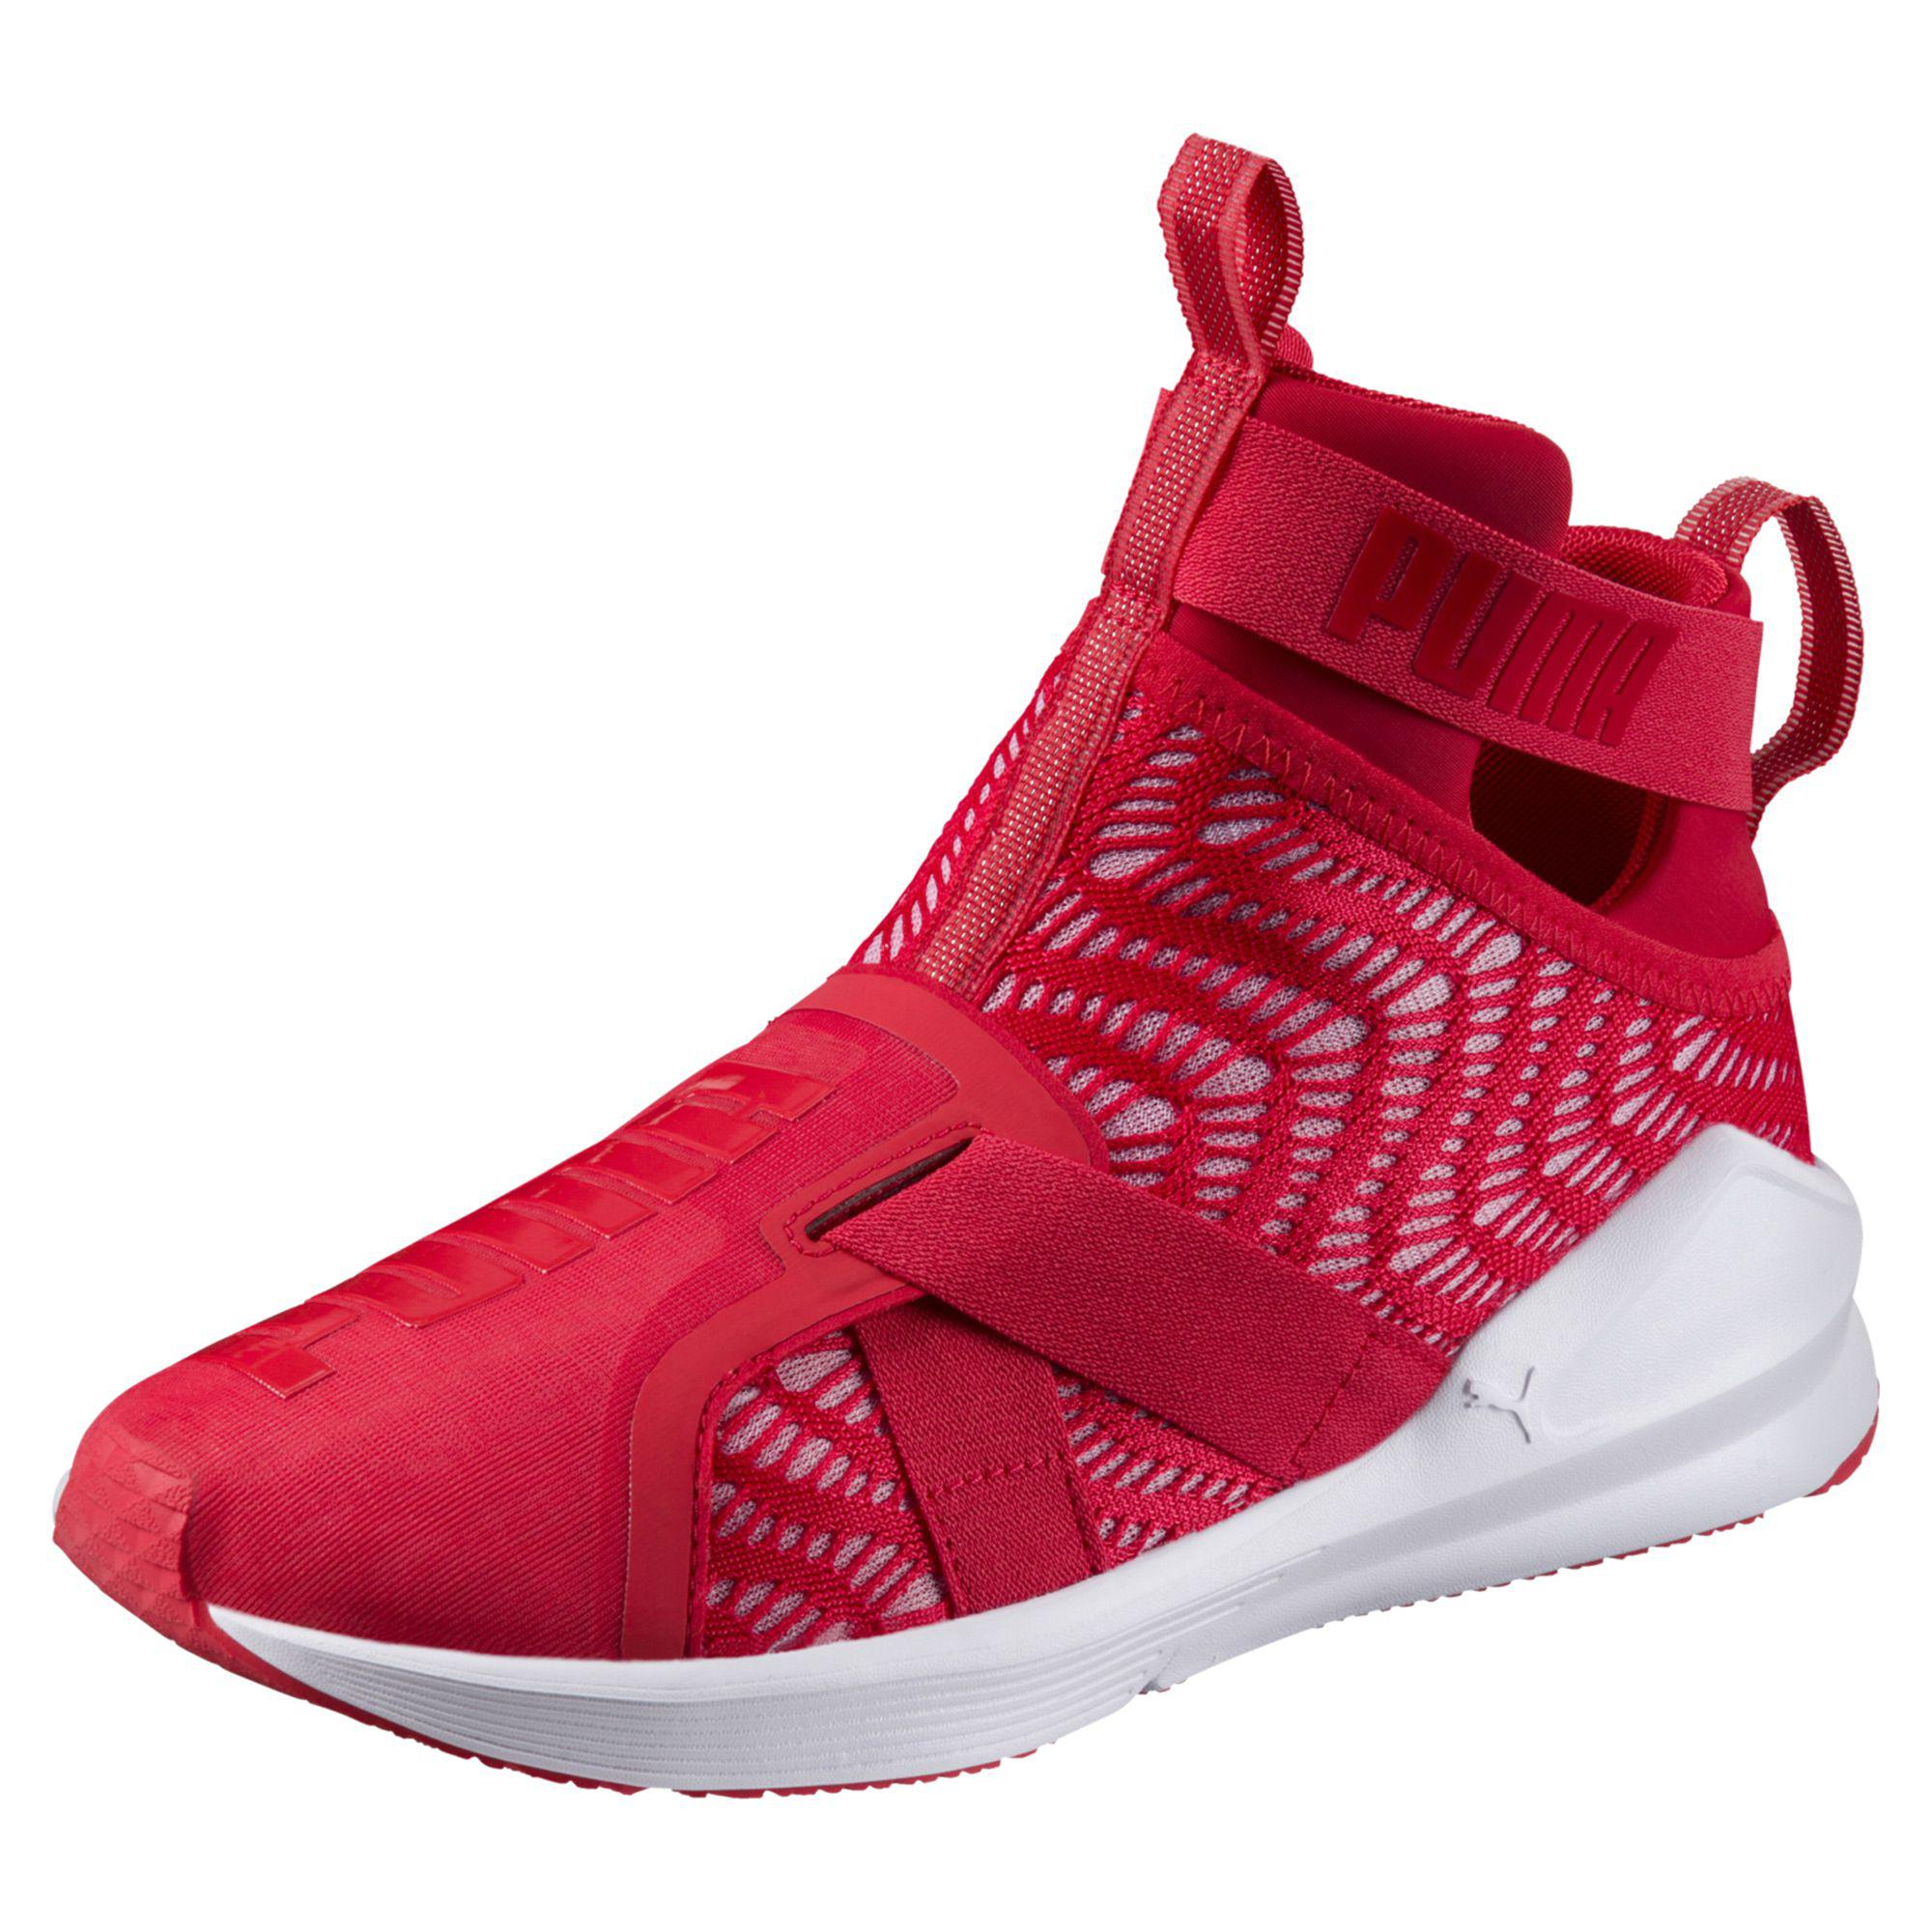 5a76a6fda9b Lyst - PUMA Fierce Strap Swirl Women s Training Shoes in Red